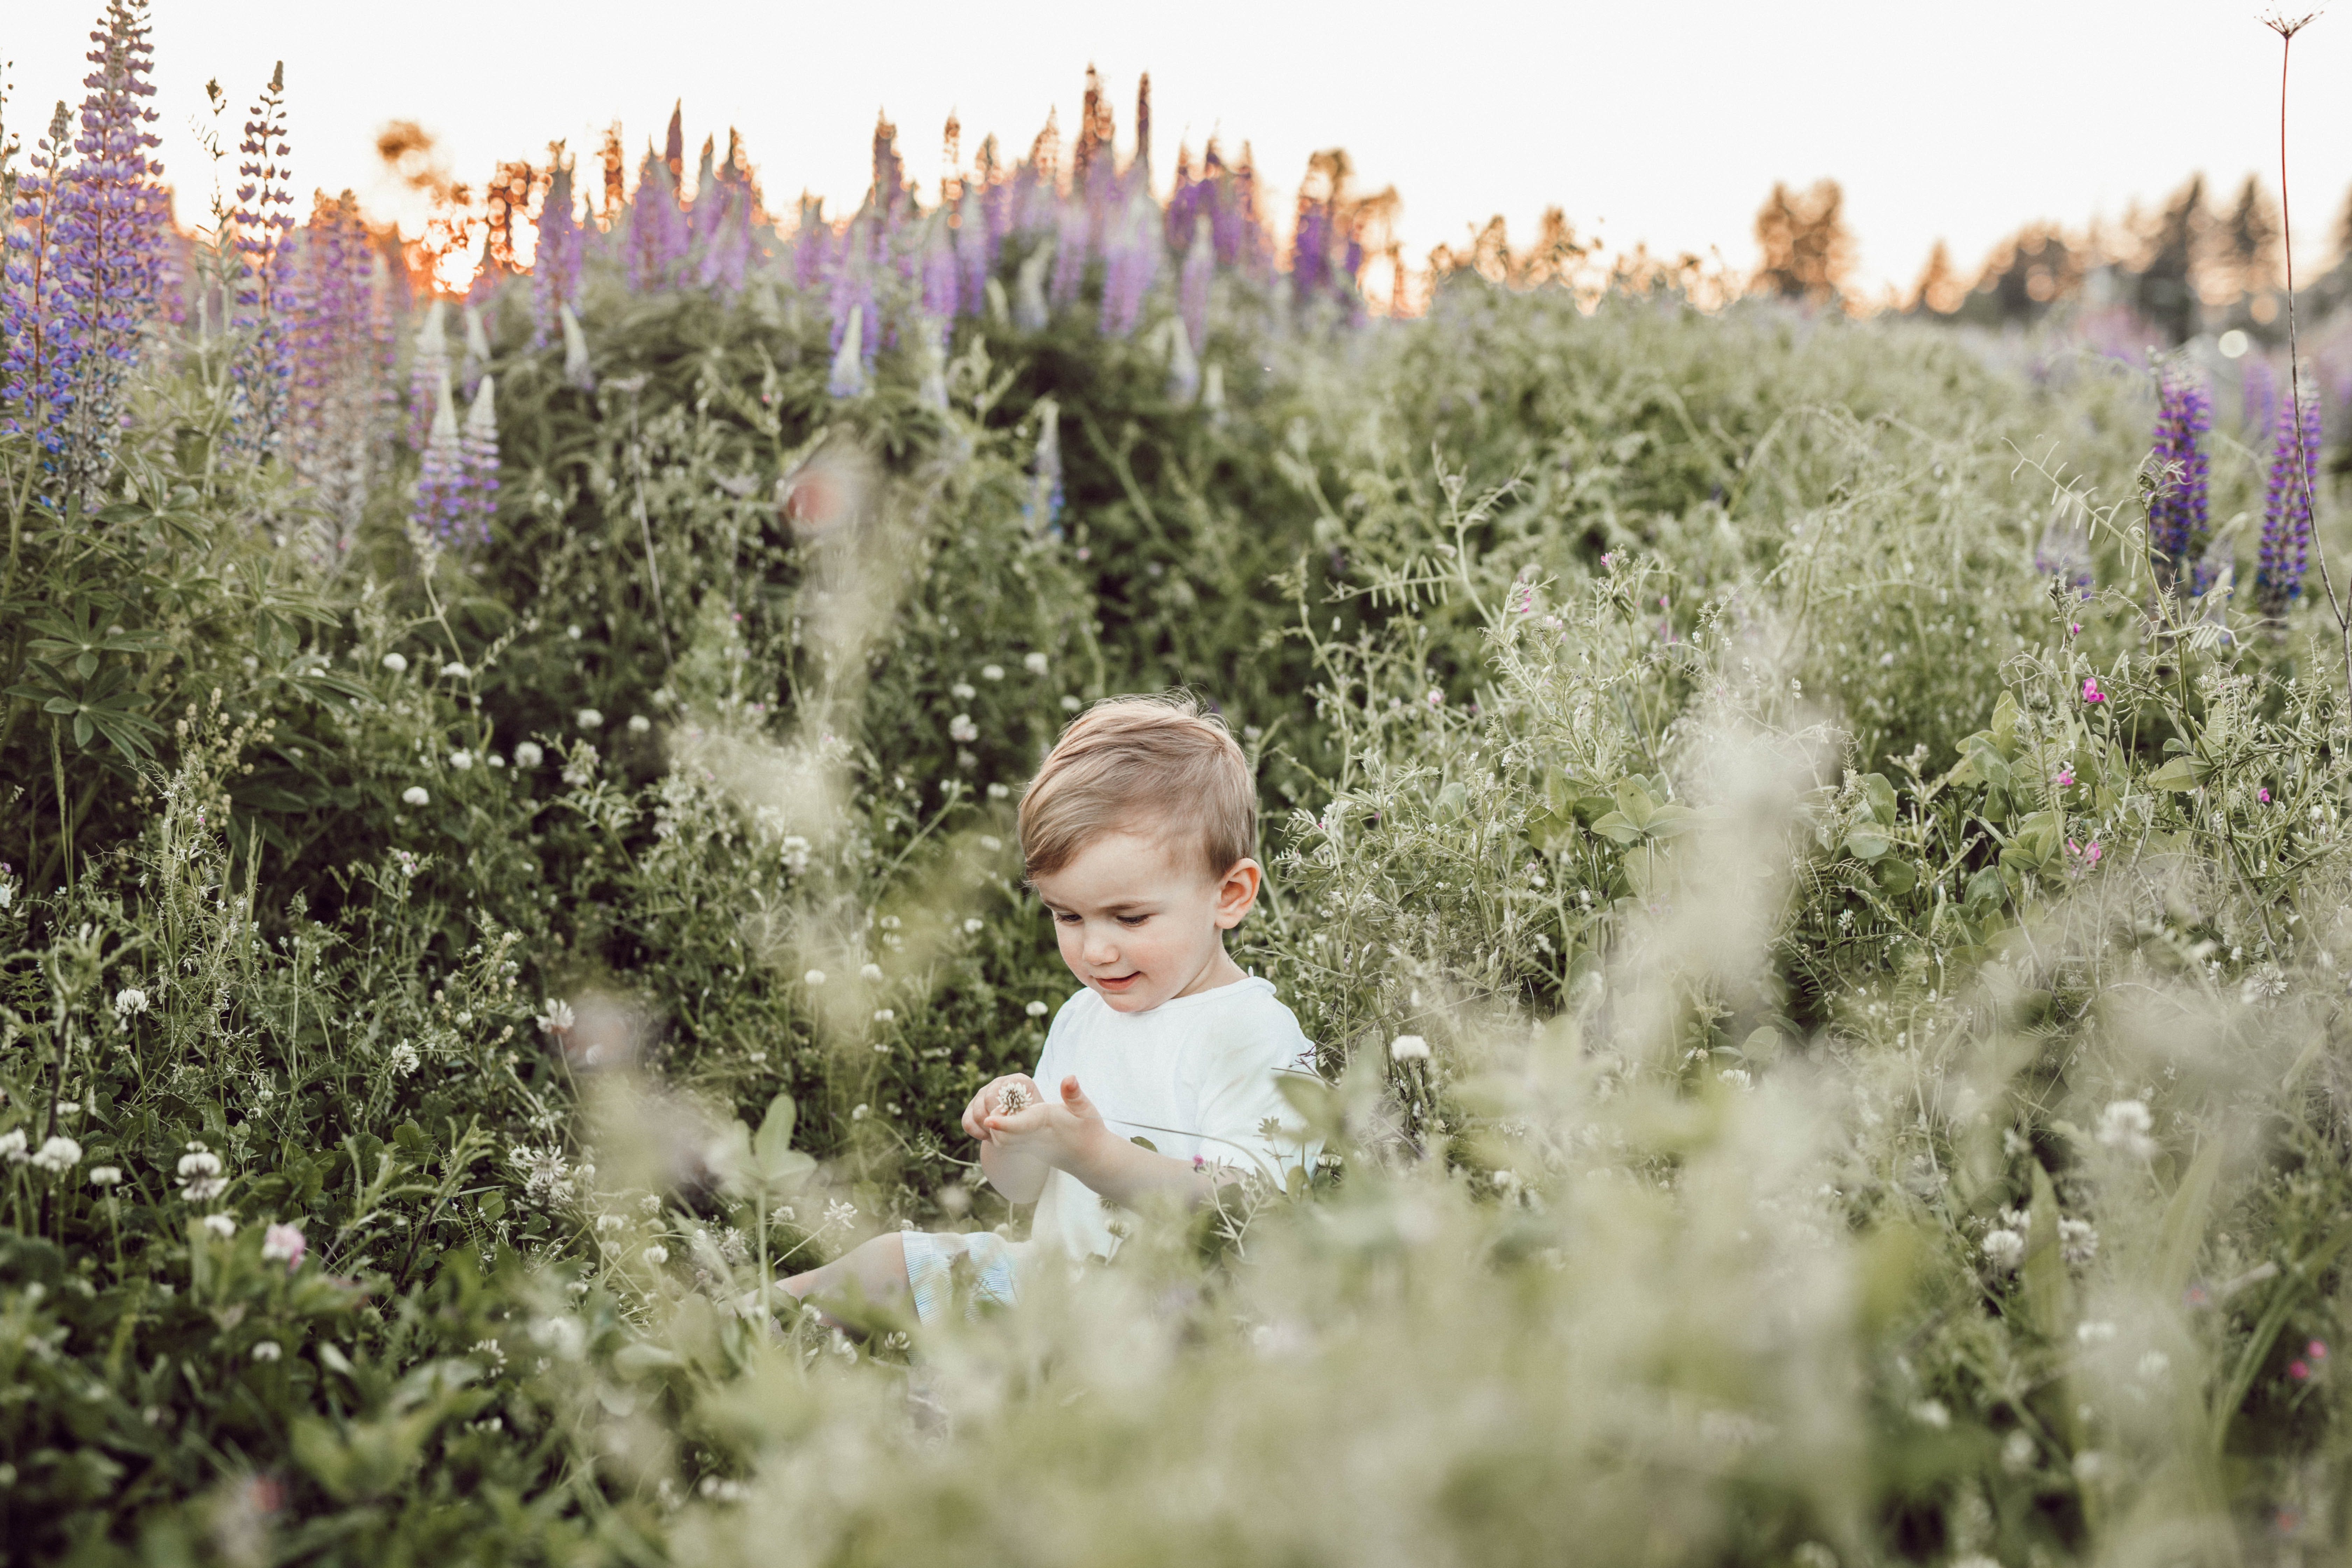 child surrounded by plants